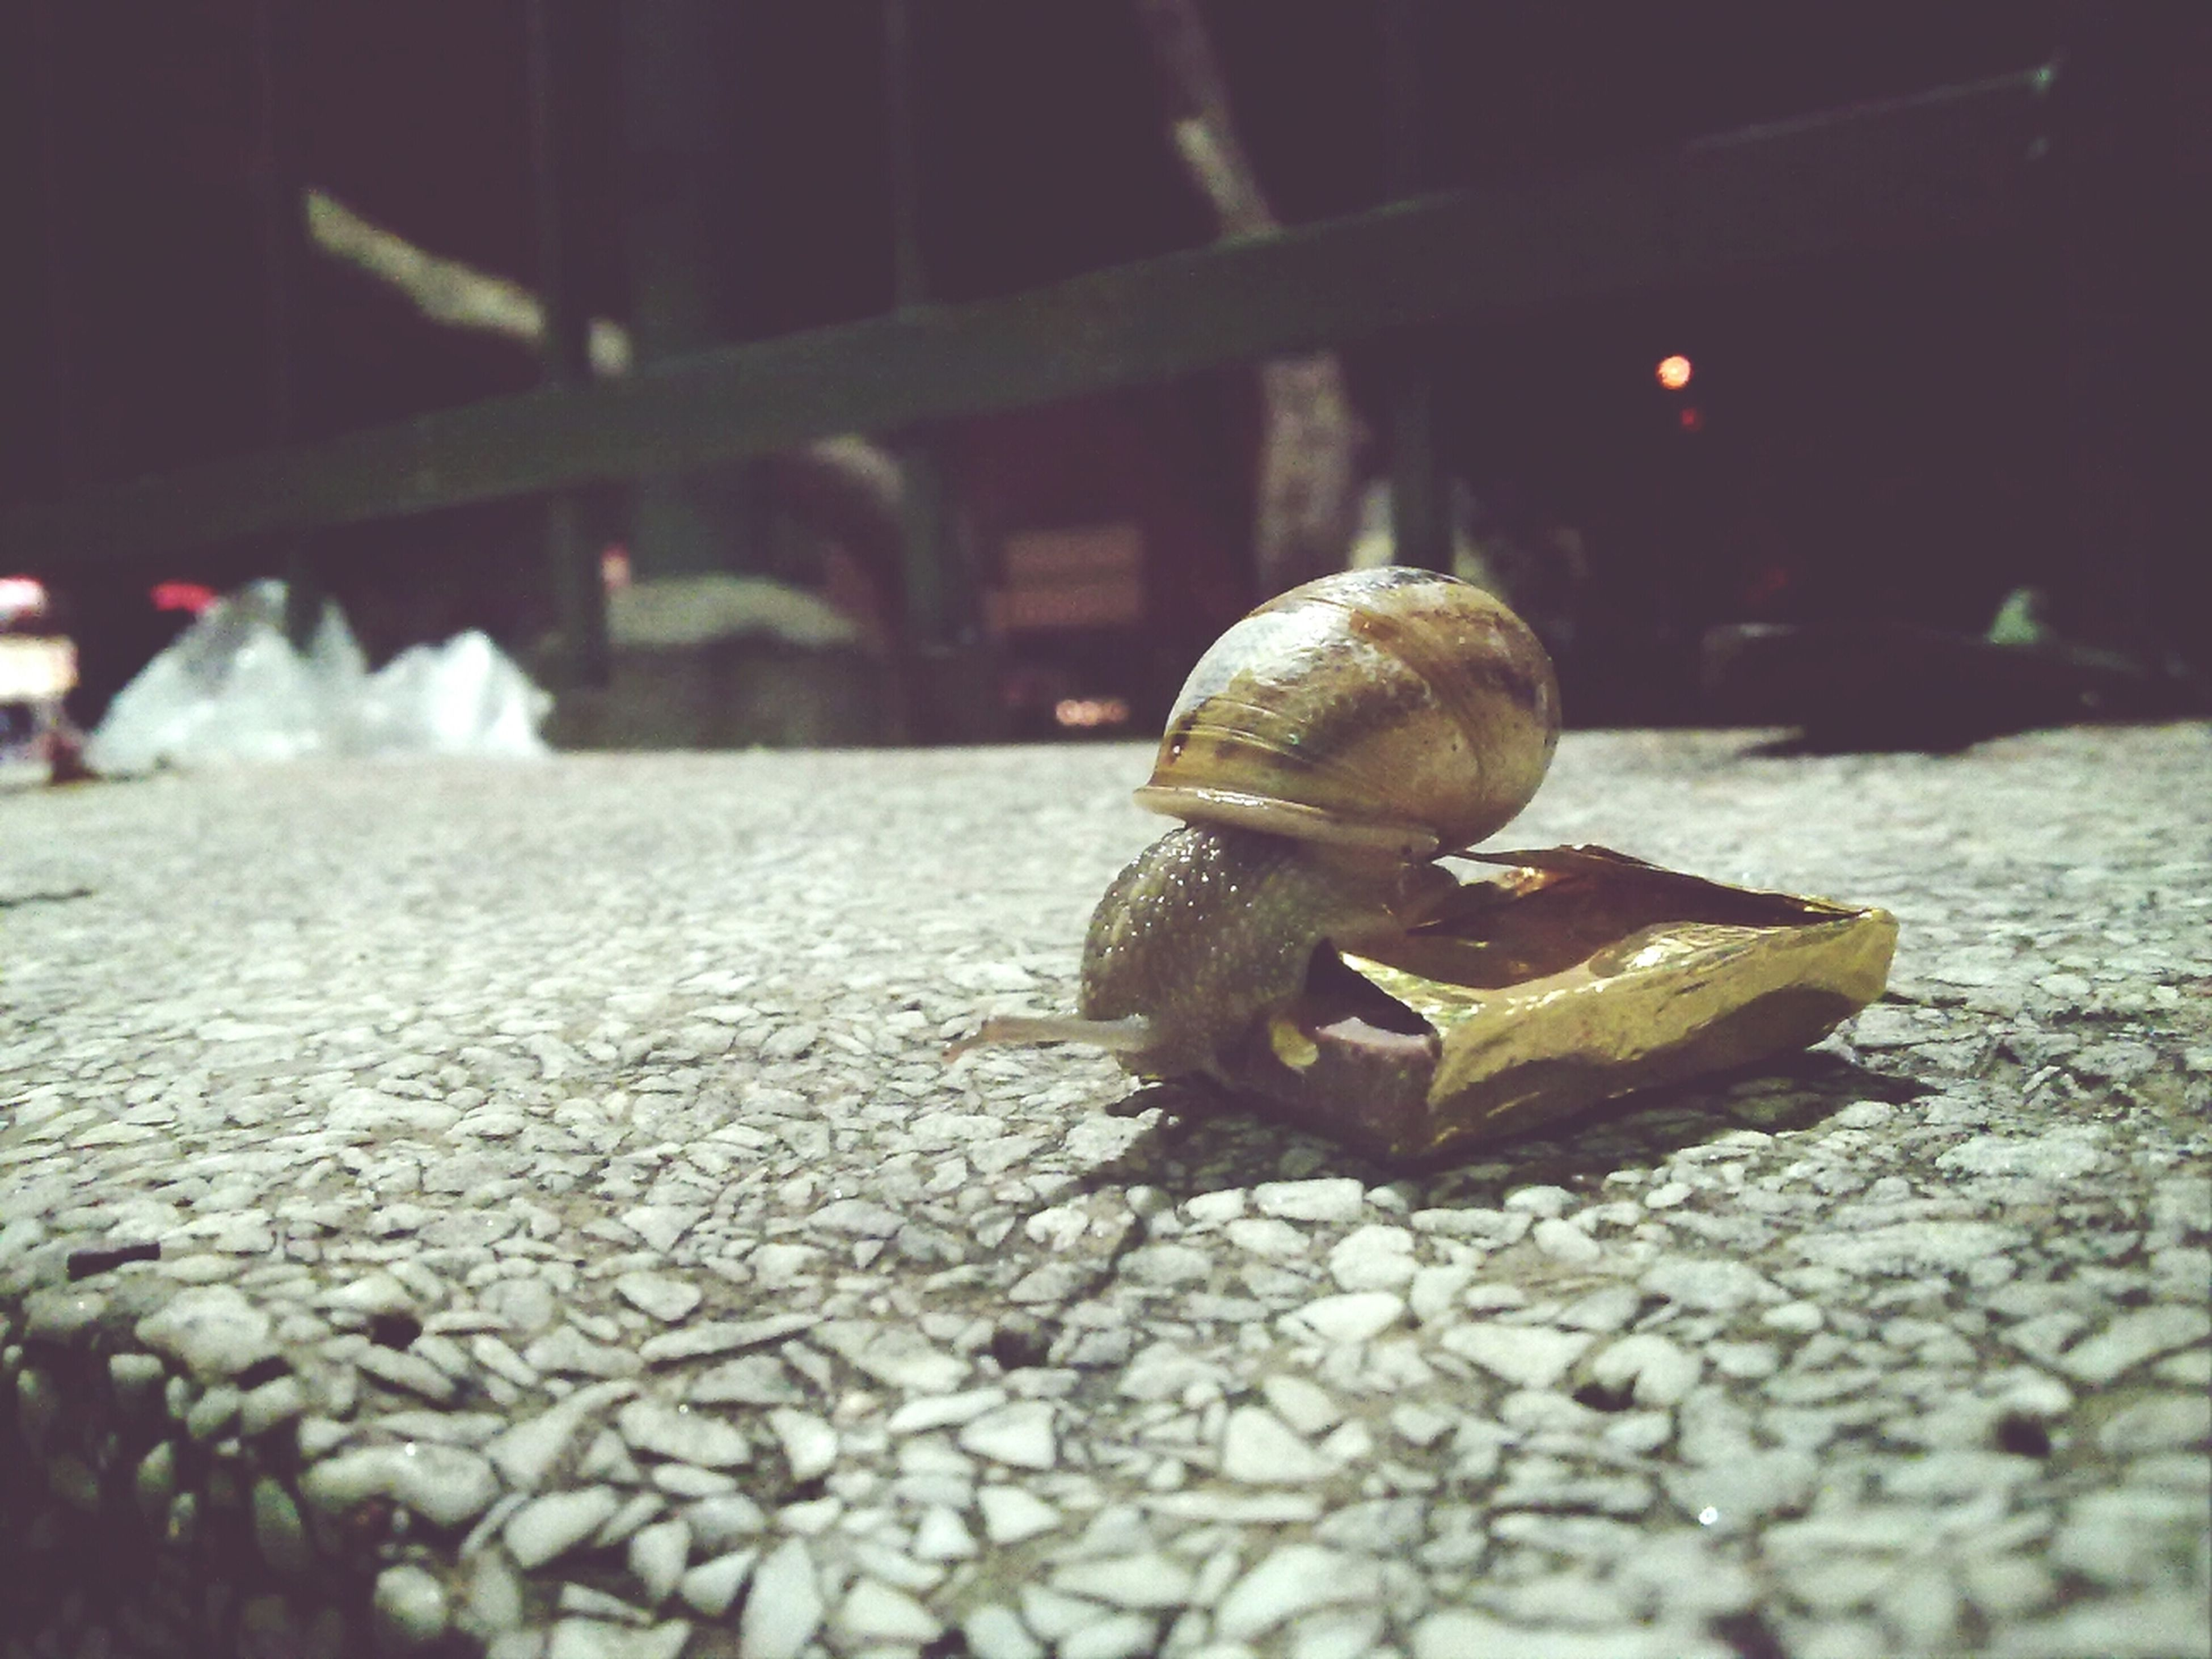 one animal, animals in the wild, animal themes, wildlife, selective focus, focus on foreground, surface level, close-up, snail, insect, animal shell, outdoors, full length, street, rock - object, day, no people, nature, road, sunlight